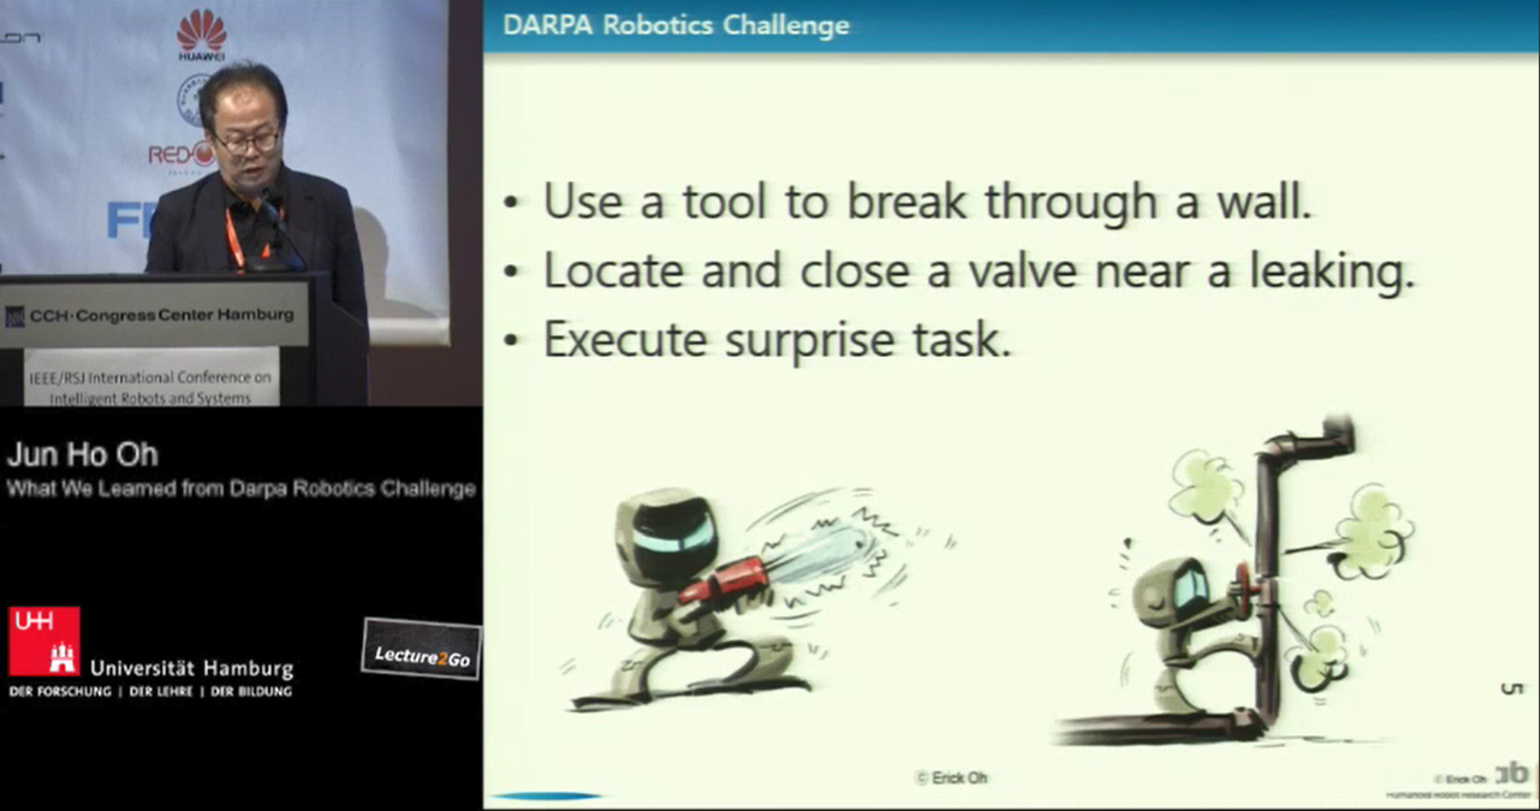 What We Learned from Darpa Robotics Challenge